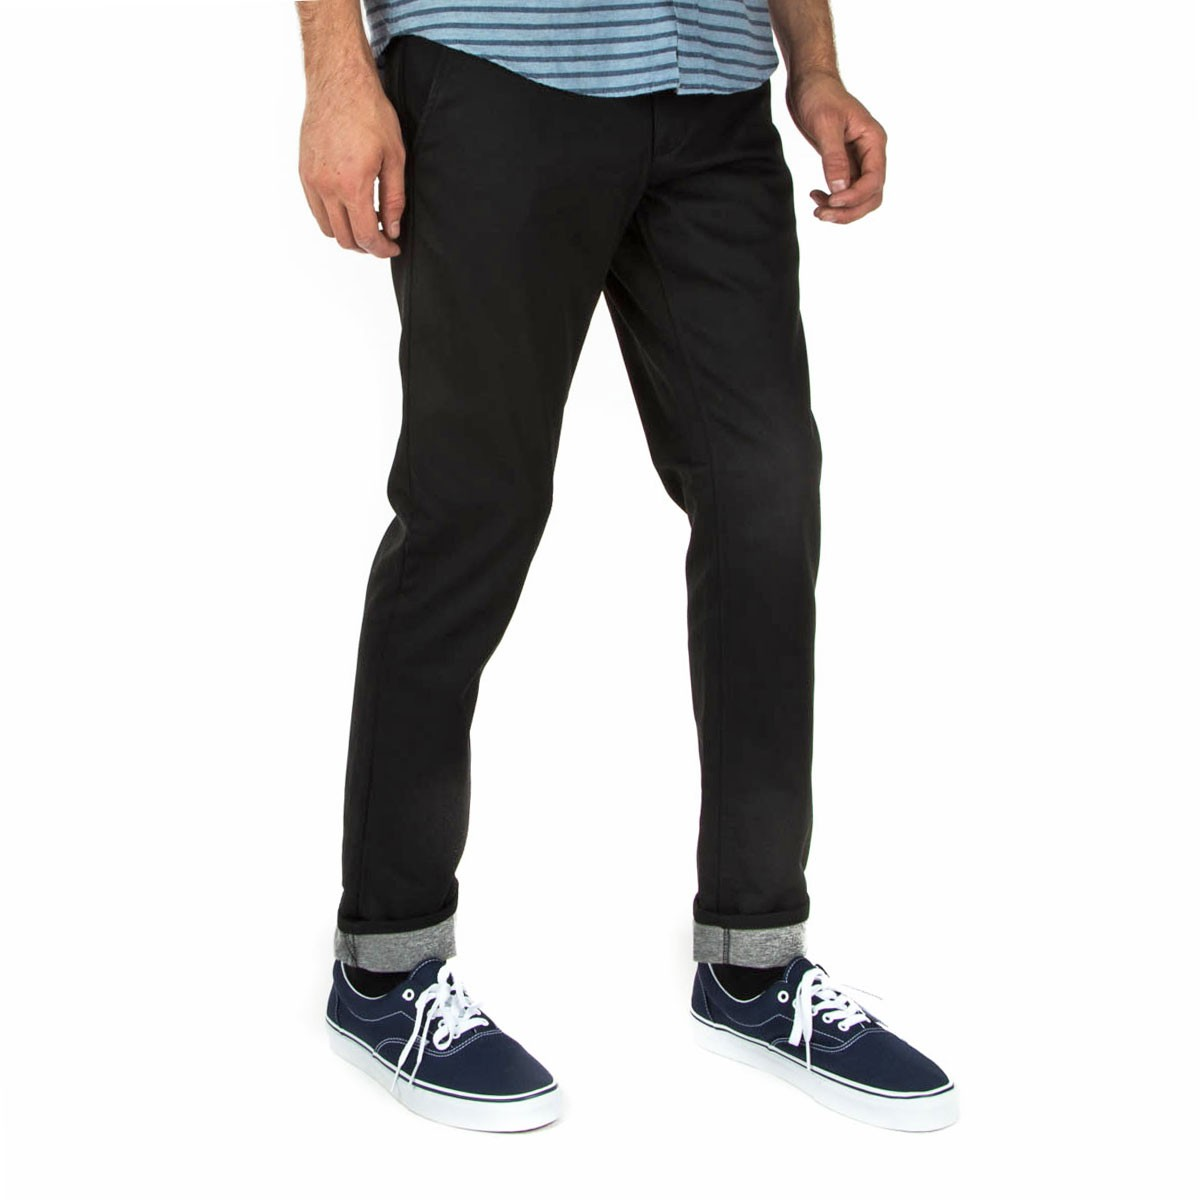 RVCA Duplex Pants - Black